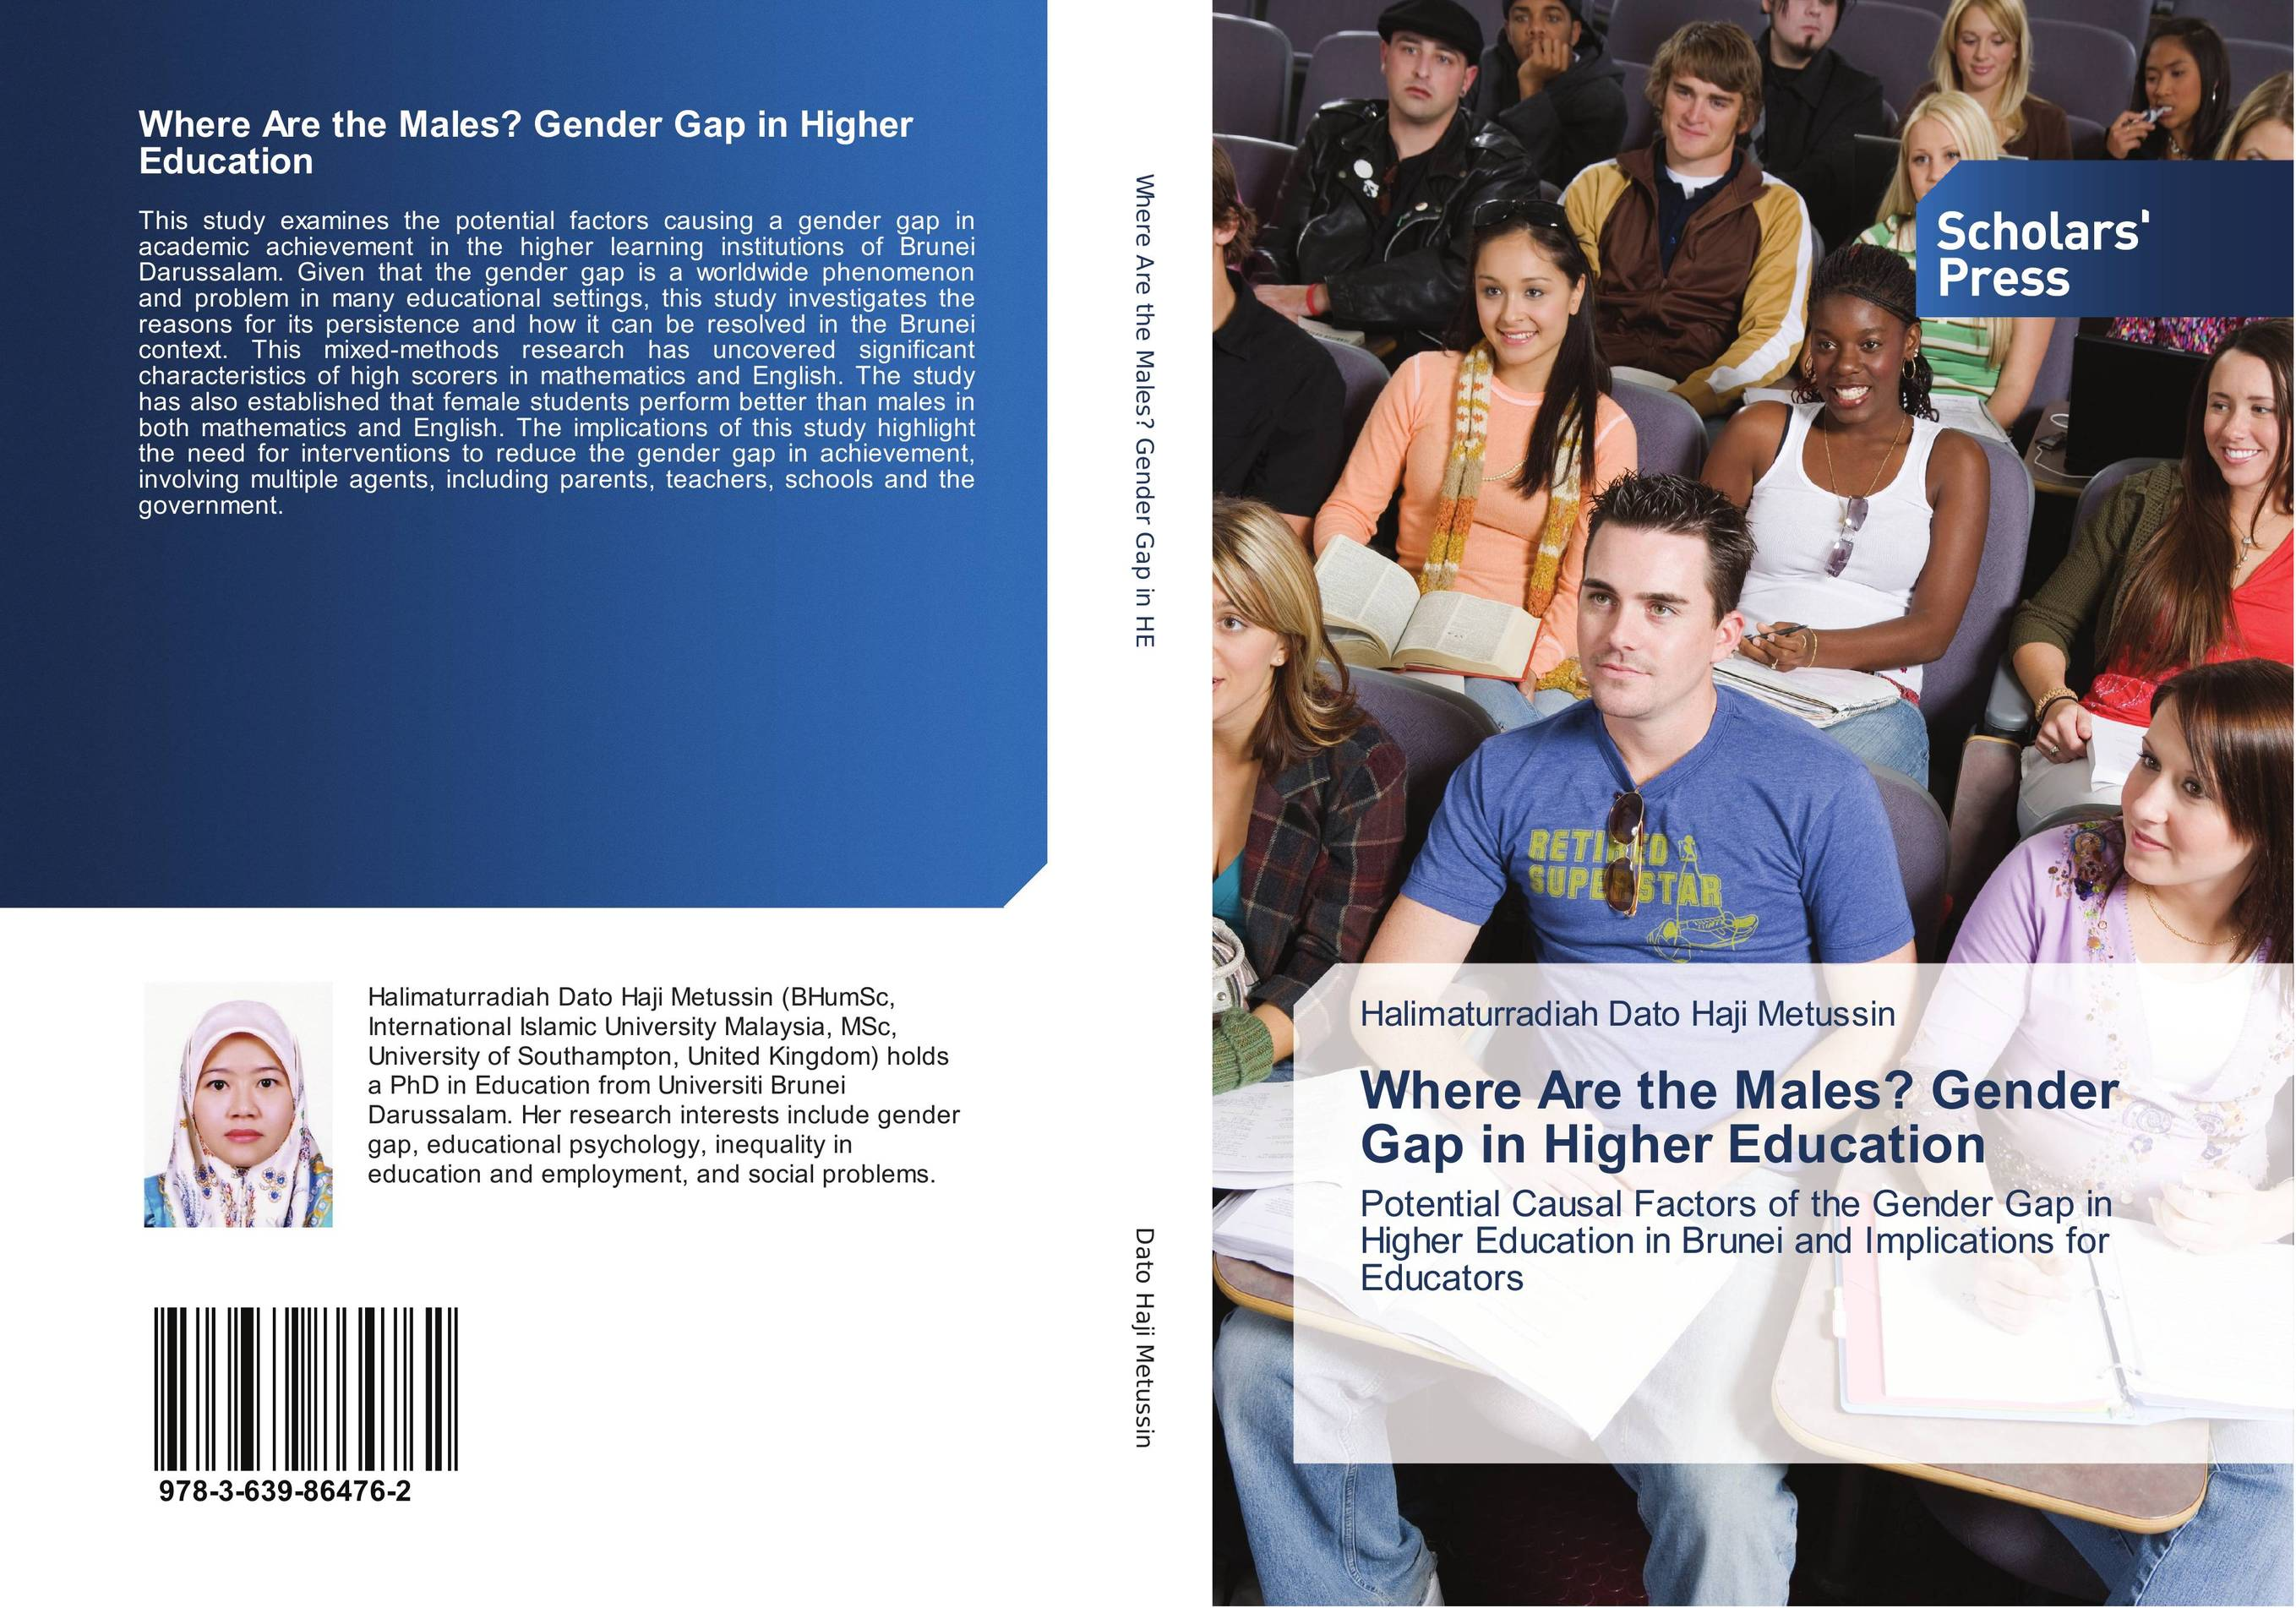 moral character in higher education While some institutions of higher education are seeking ways to stimulate political engagement as well as other kinds of civic participation and leadership, thus far we have found that this is the aspect of civic responsibility that is least attended to in higher education, even among schools with strong commitments to moral and civic learning.